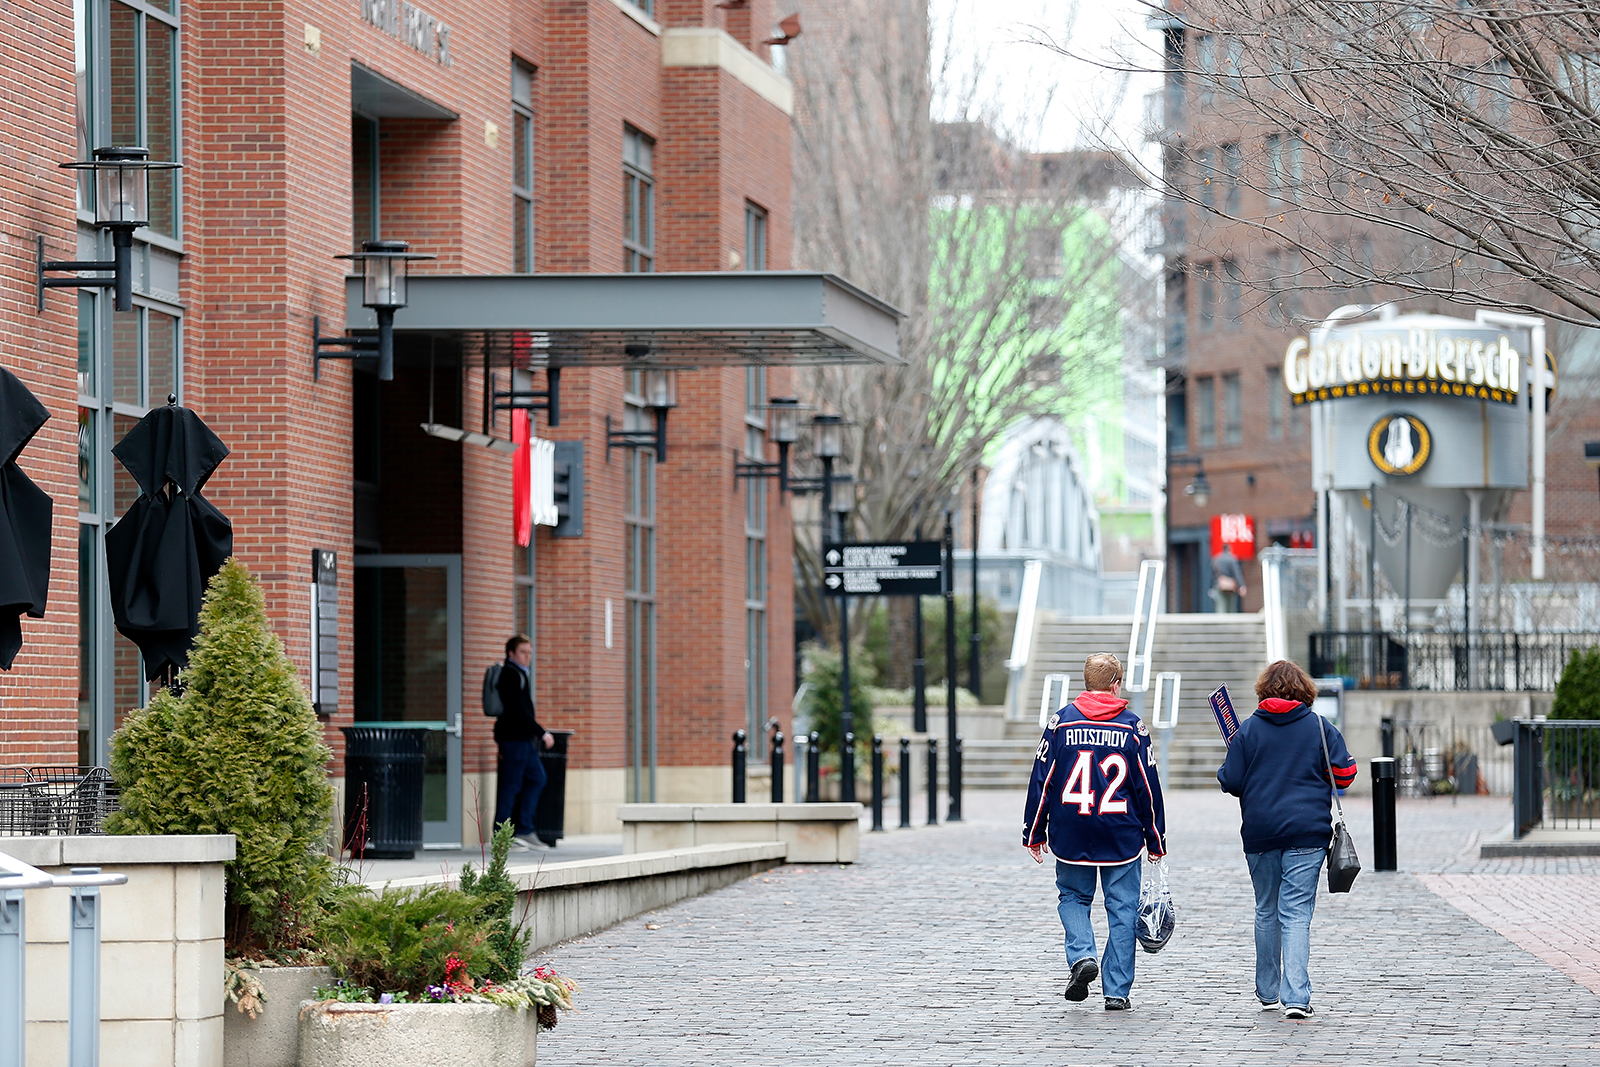 A pair of fans walk down an empty walkway at the Nationwide Arena in Columbus, Ohio, on March 12. The game between the Columbus Blue Jackets and the Pittsburgh Penguins was canceled after the NHL's decision to suspend the remaining games in the season due to the continuing outbreak of the coronavirus (COVID-19).